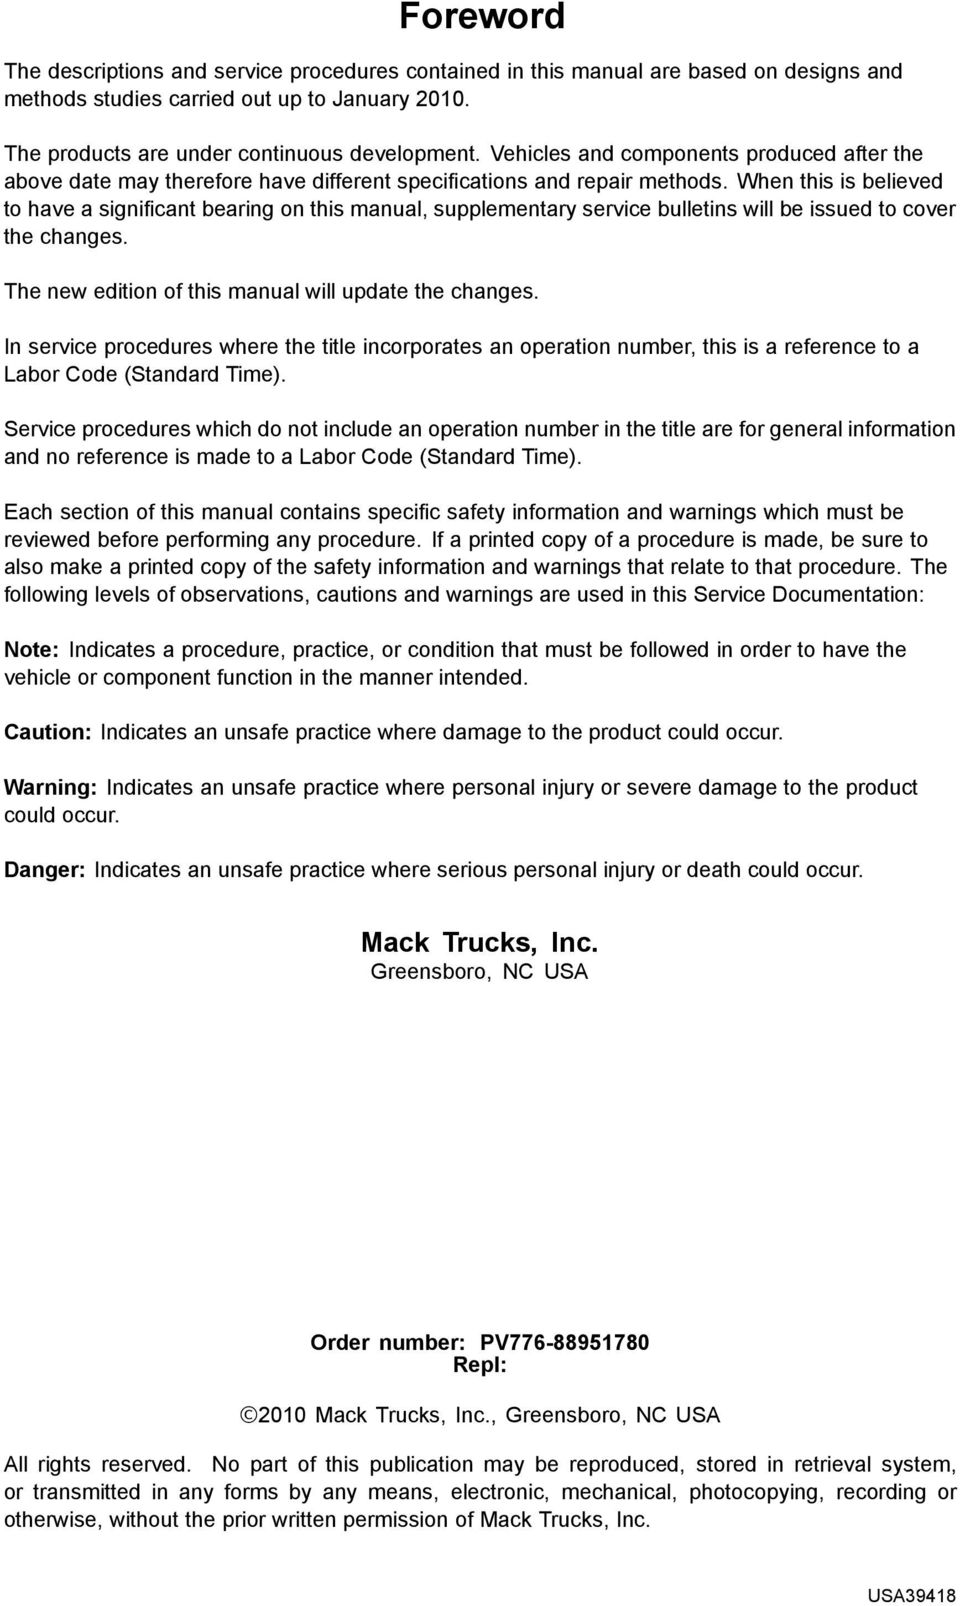 Service Manual Trucks Pdf 1999 Volvo Truck Ecu Wiring When This Is Believed To Have A Significant Bearing On Supplementary Bulletins